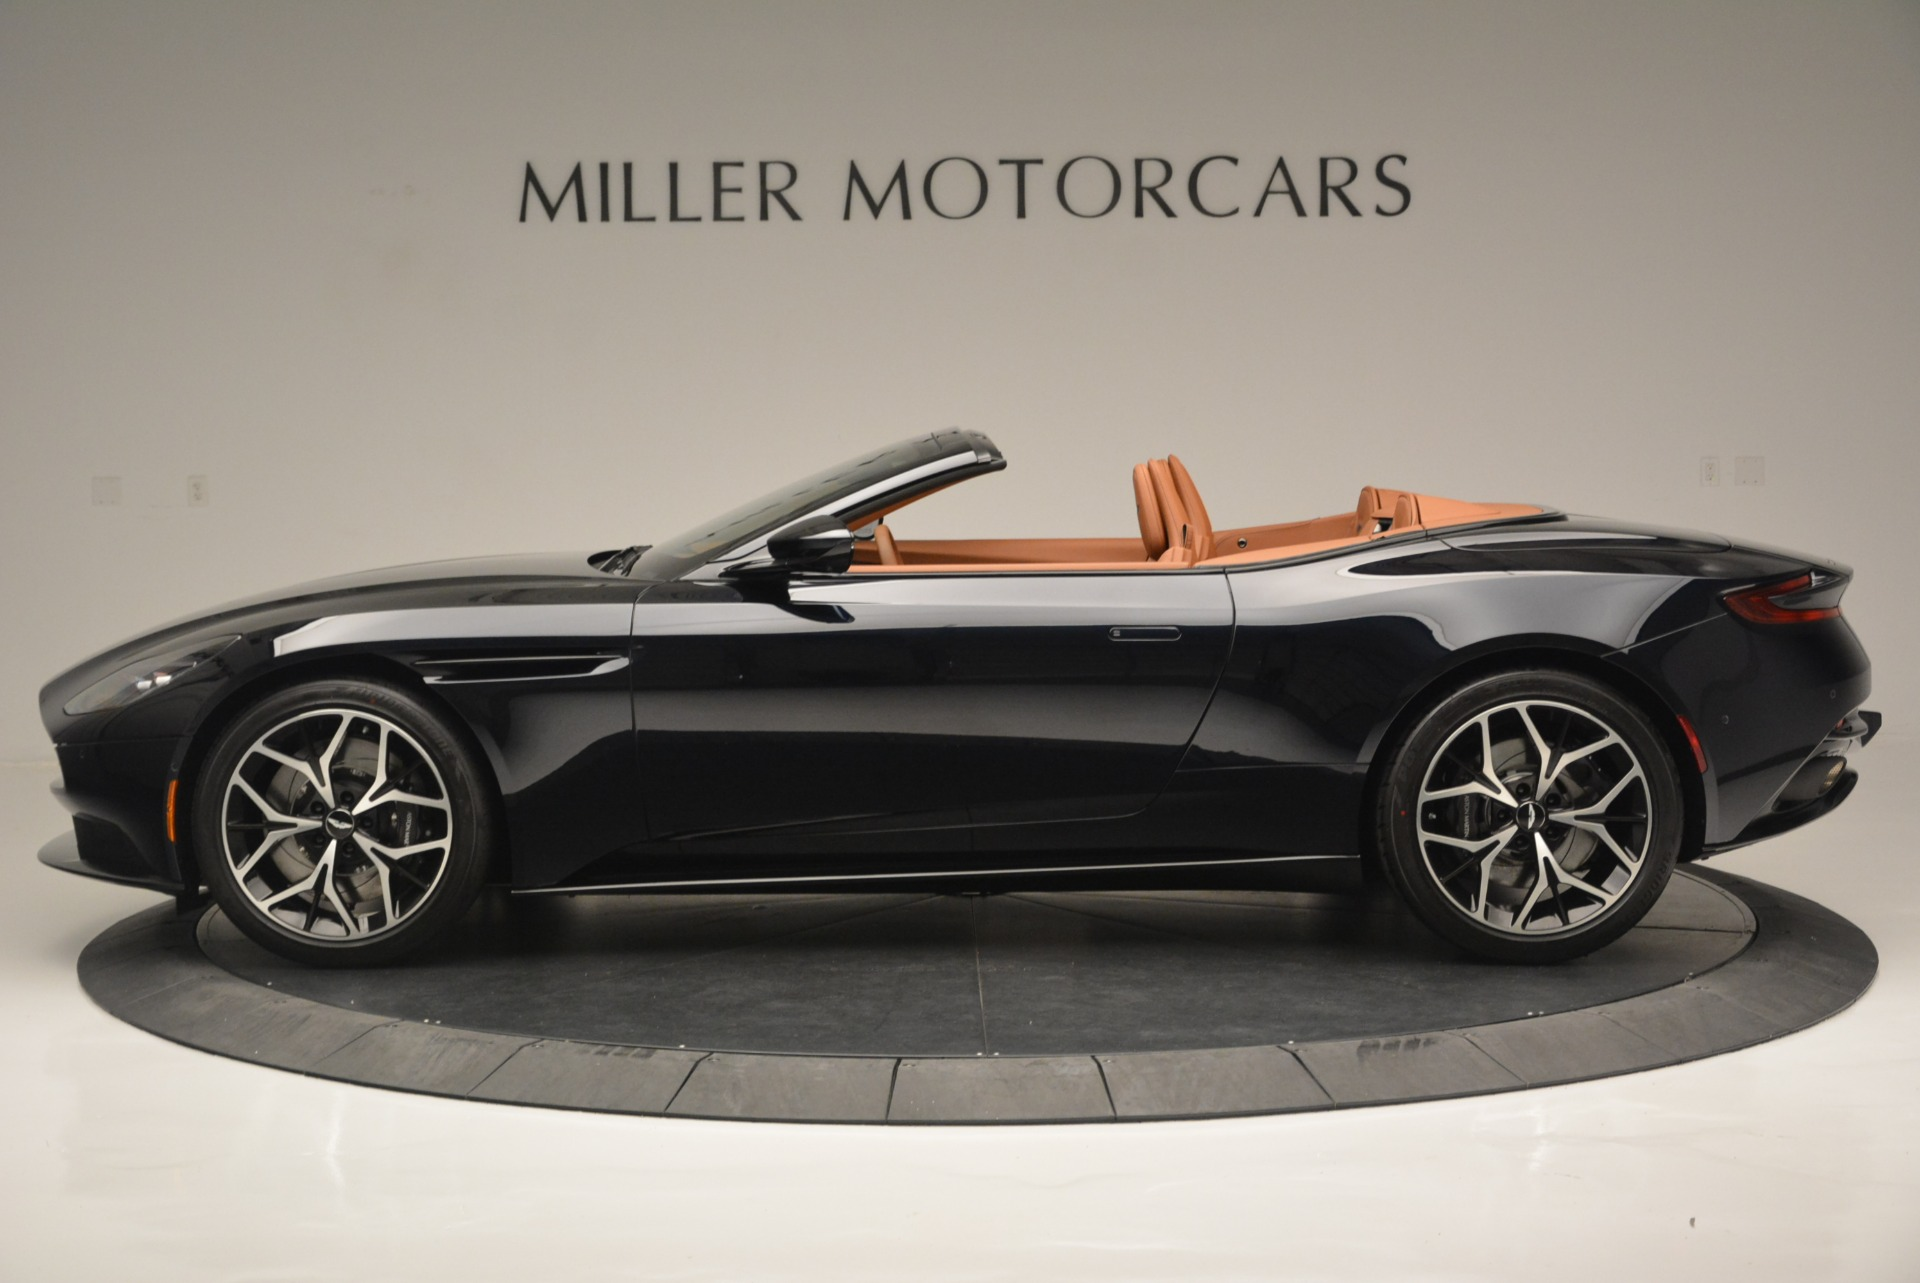 New 2019 Aston Martin DB11 Volante Volante For Sale In Westport, CT 2450_p3